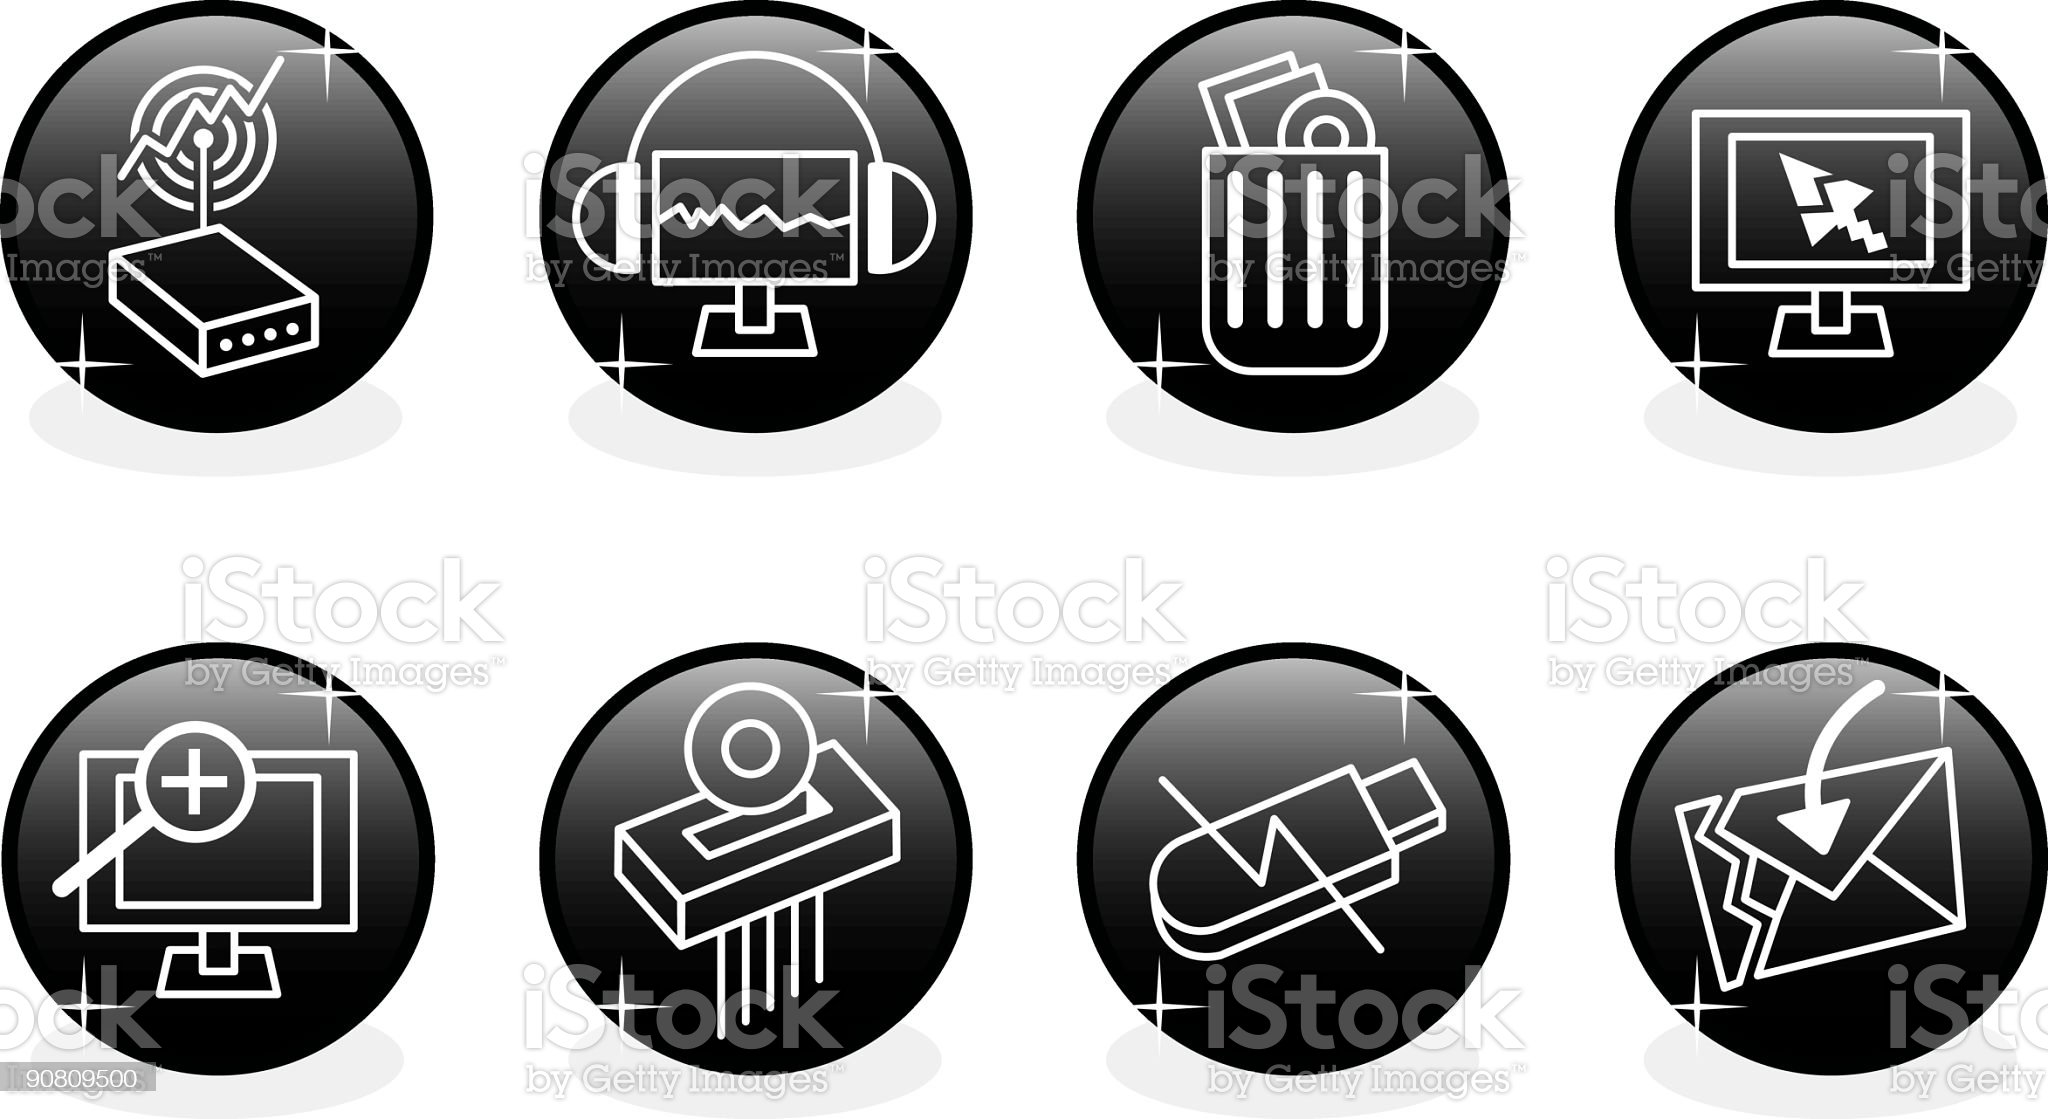 Icons set - security royalty-free stock vector art